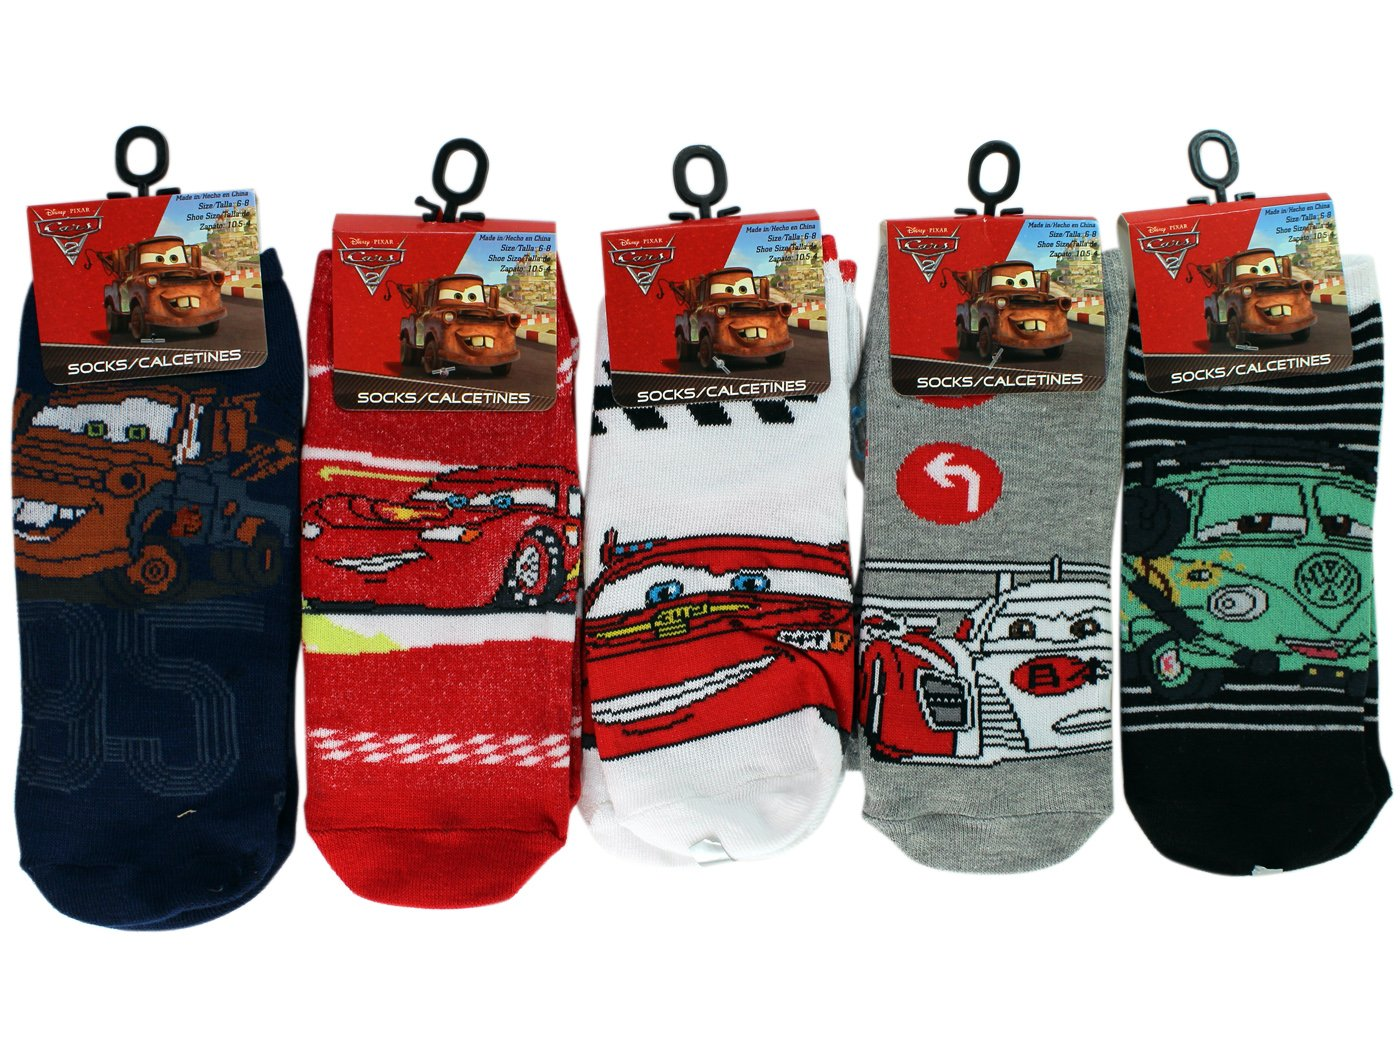 Amazon.com: 3 Pair Assorted Disney Cars Socks (Size 6-8) - Kids Socks: Sports & Outdoors